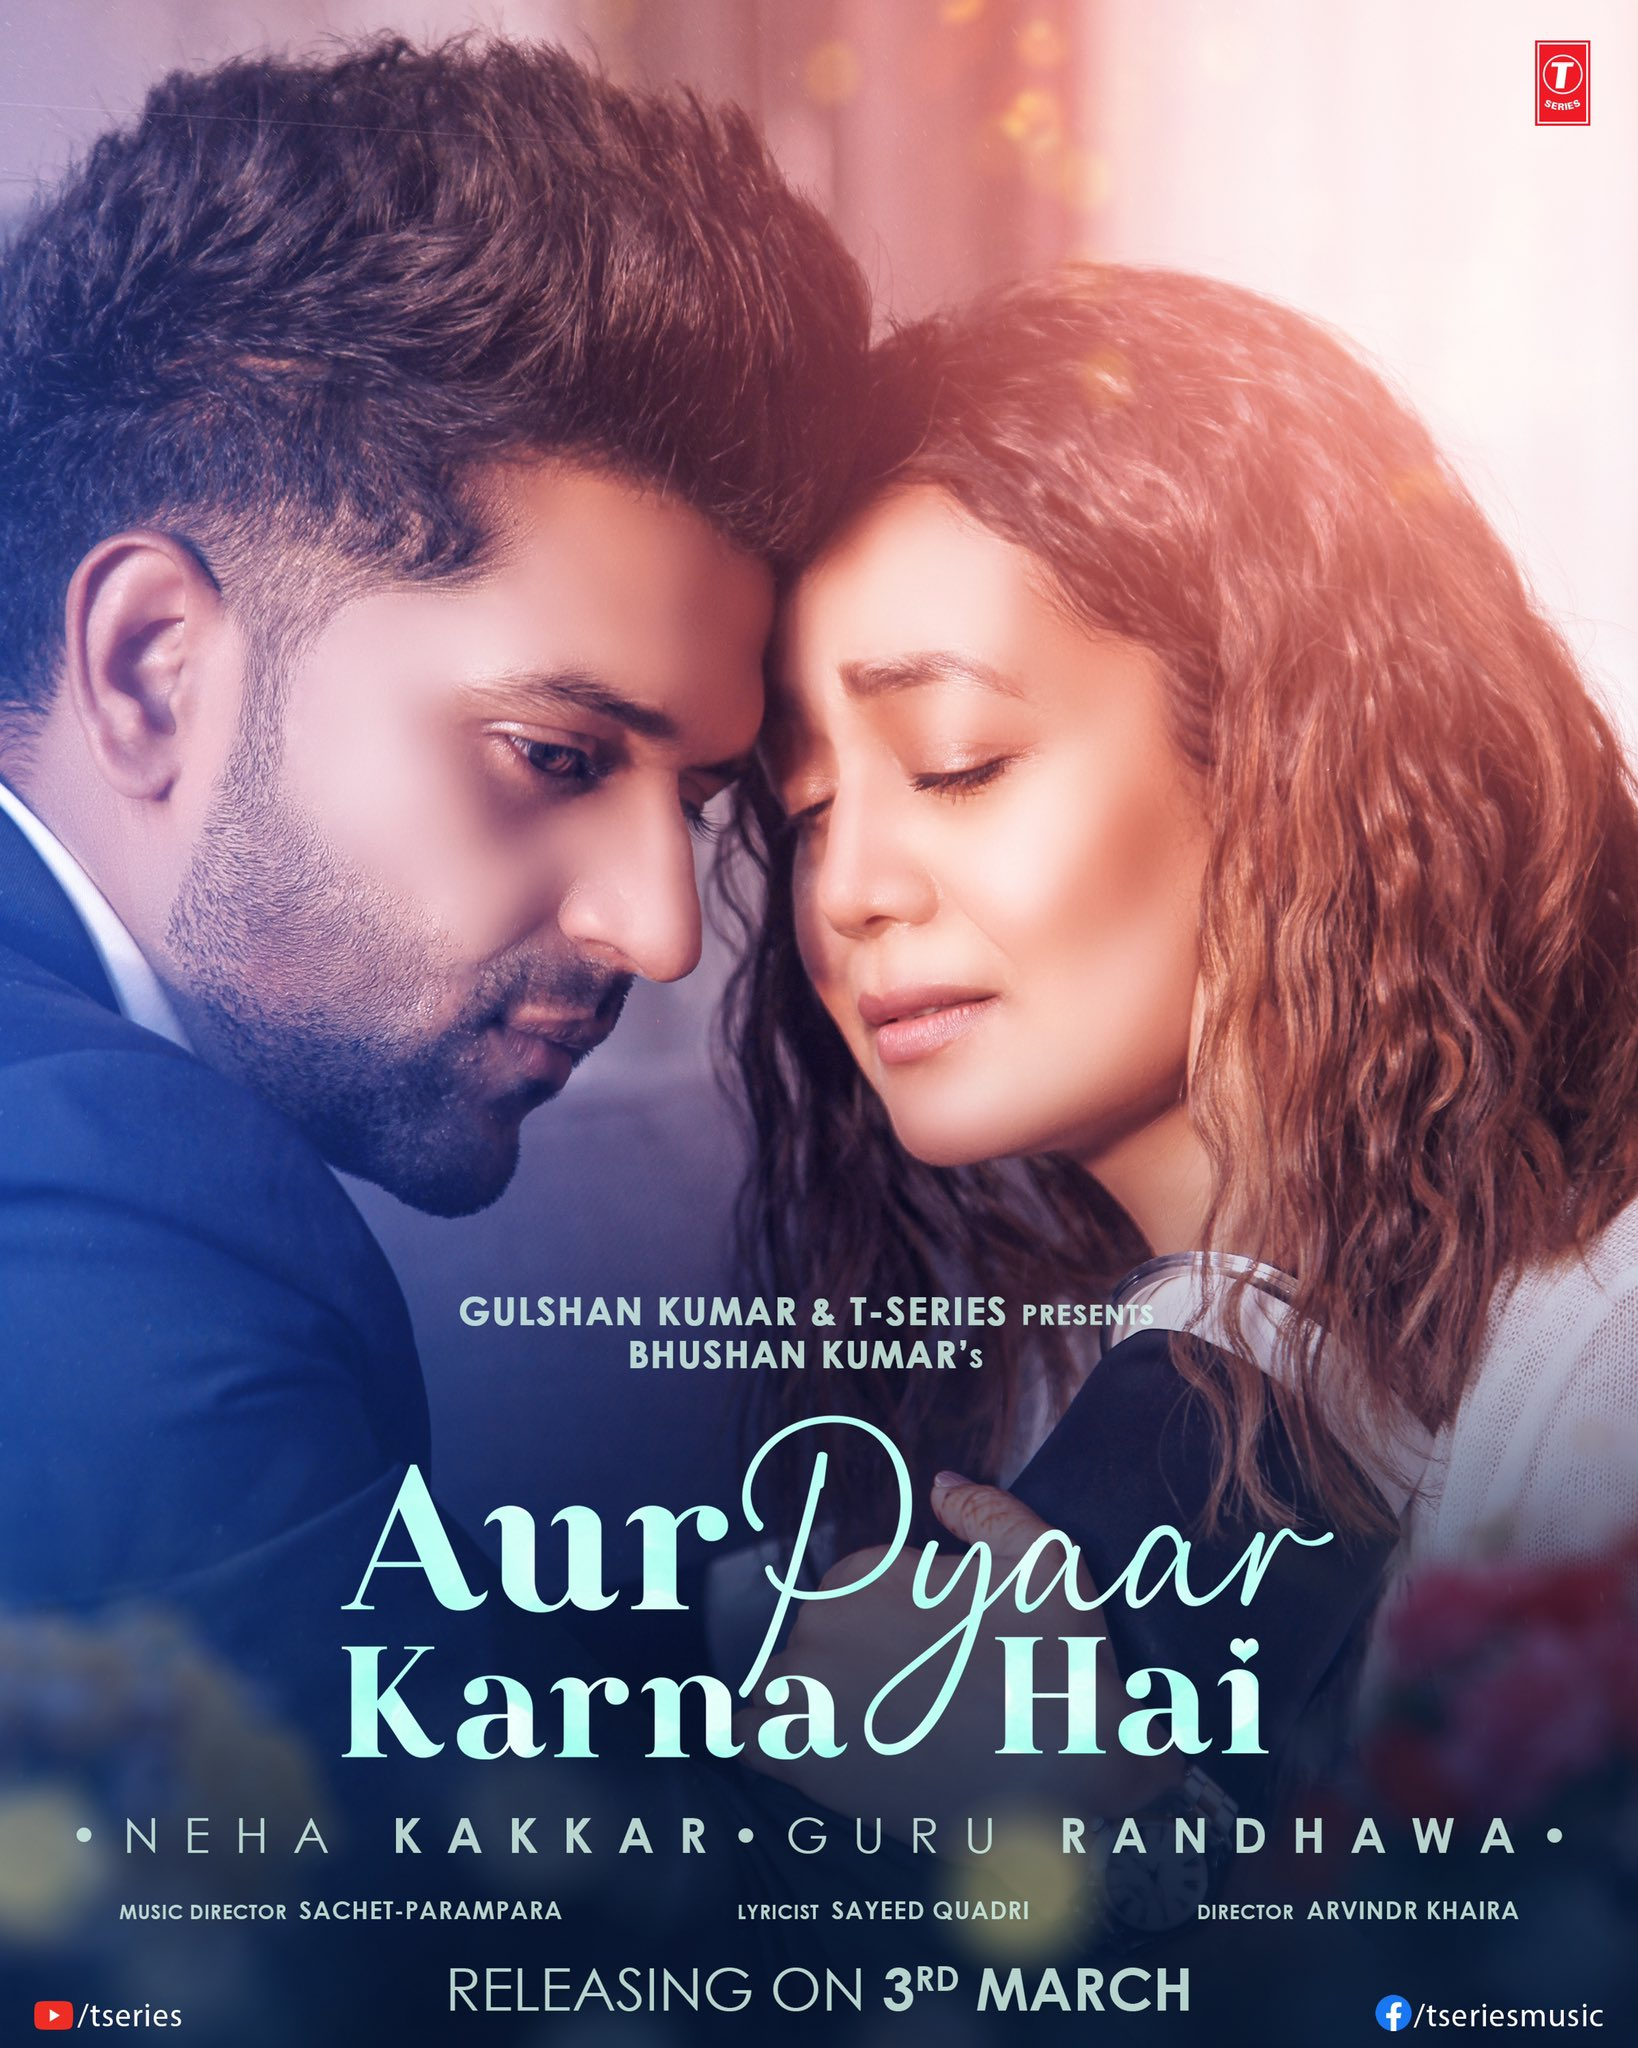 Aur Pyaar Karna Hai By Neha Kakkar & Guru Randhawa Official Music Video 1080p HDRip Download